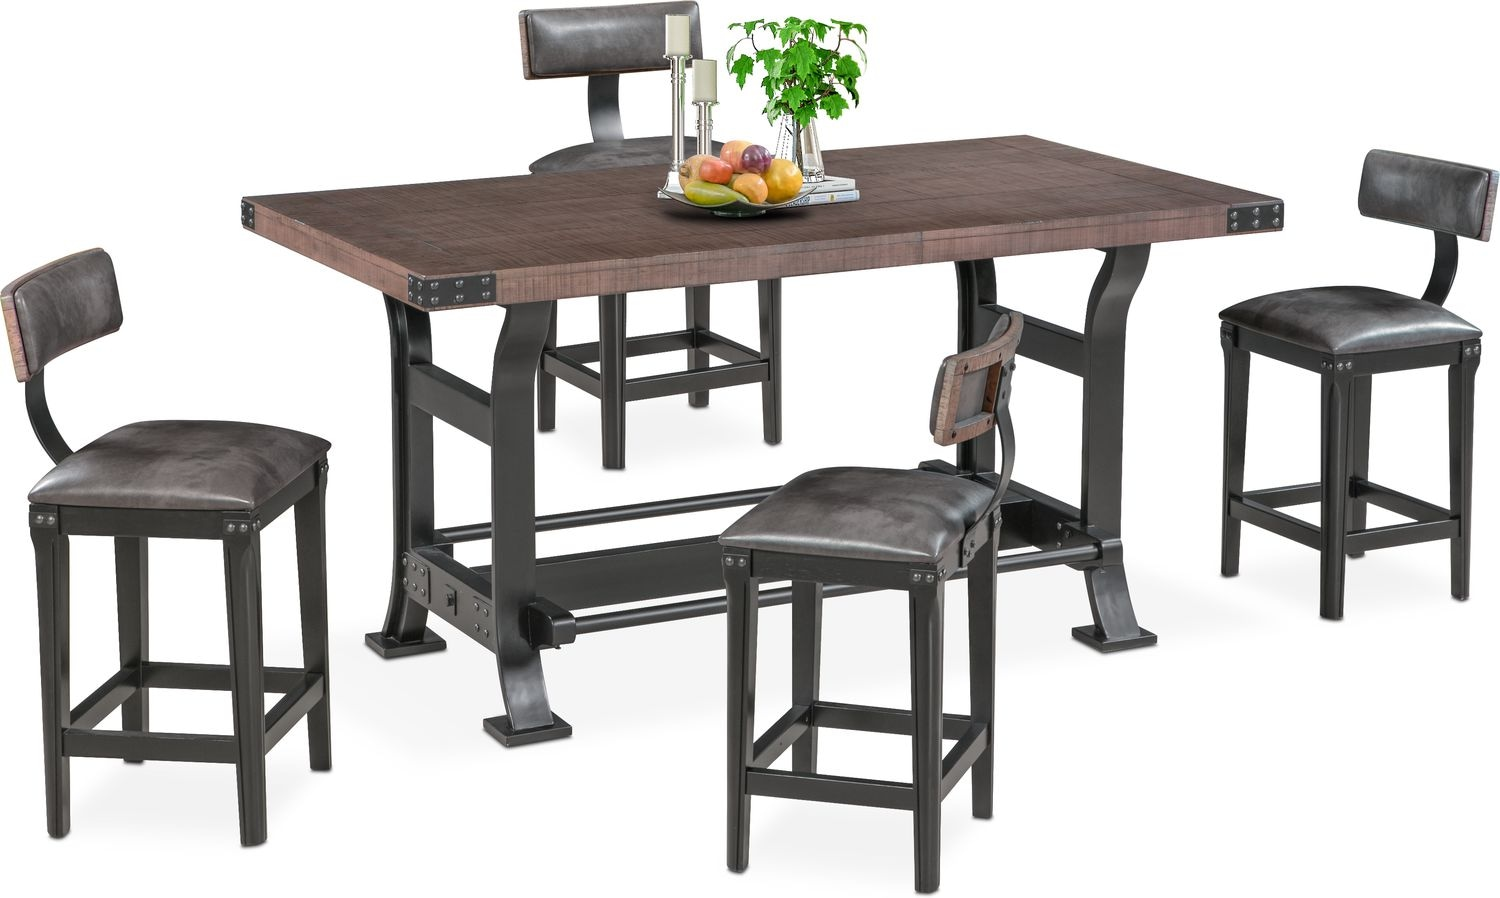 Newcastle Counter Height Dining Table And 4 Stools Gray